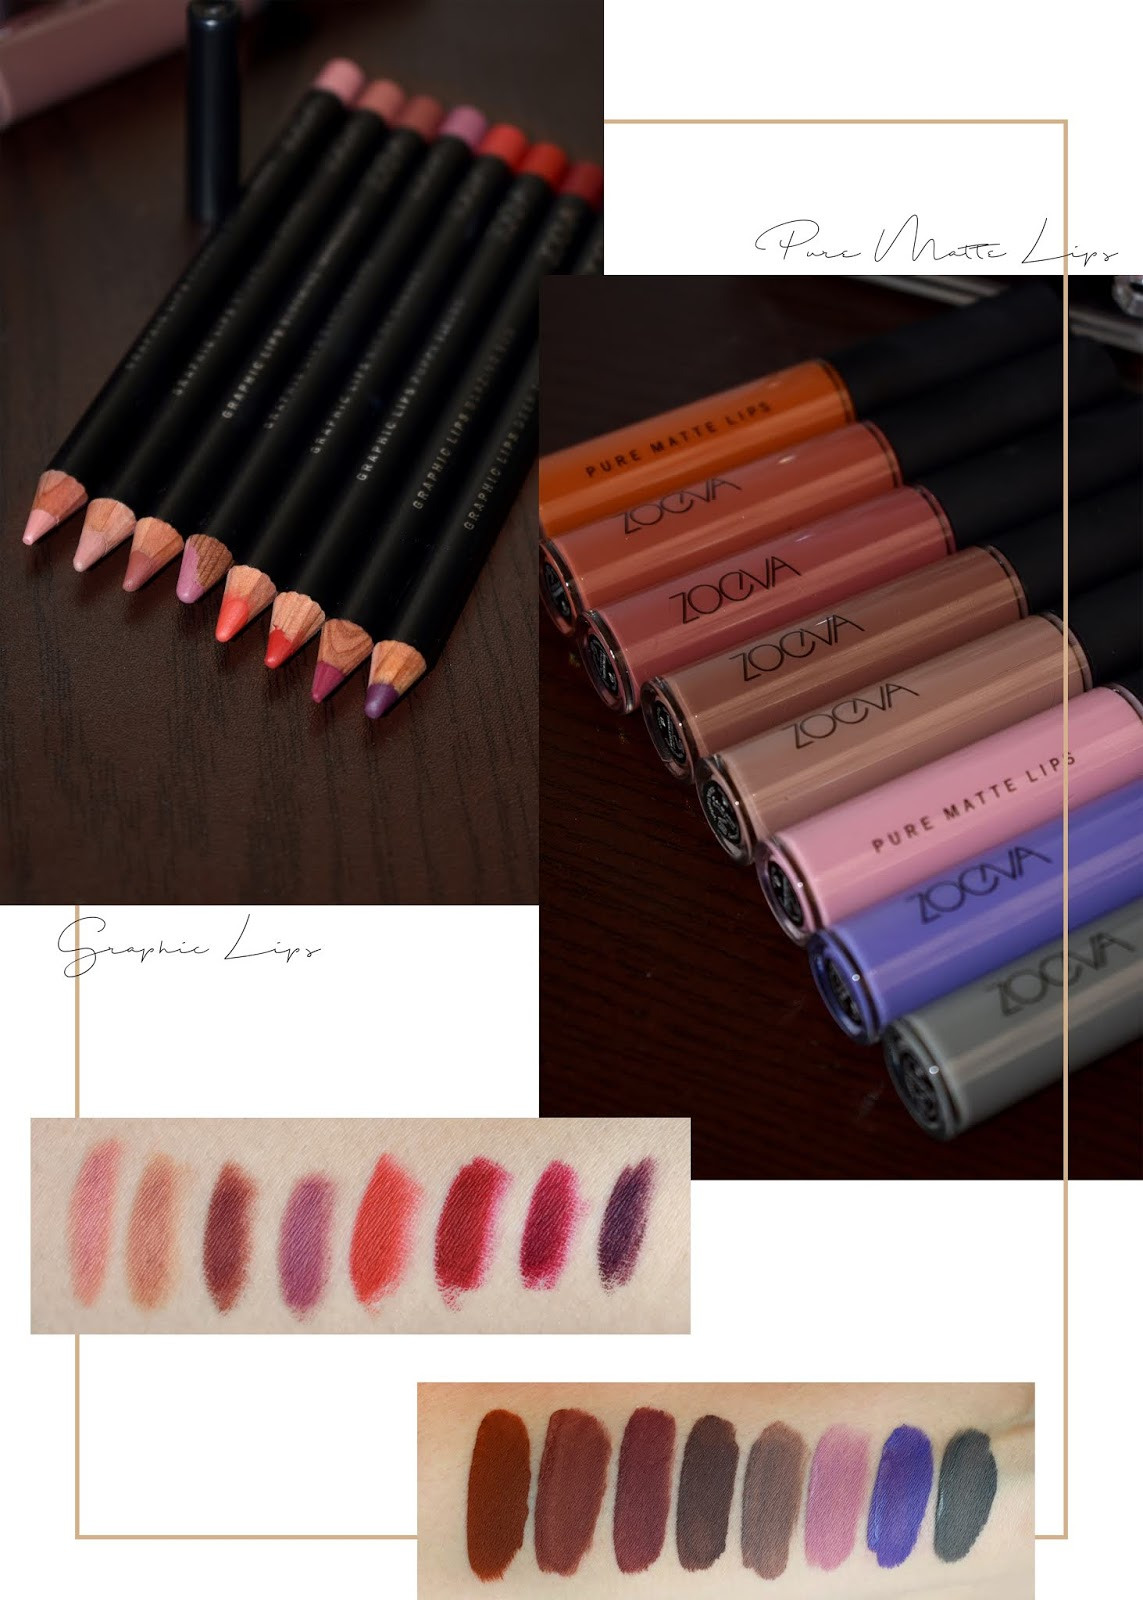 zoeva pure matte lips beauty blogger belleza mexicana maquillaje makeup look liquid lipstick swatches graphic liners 3